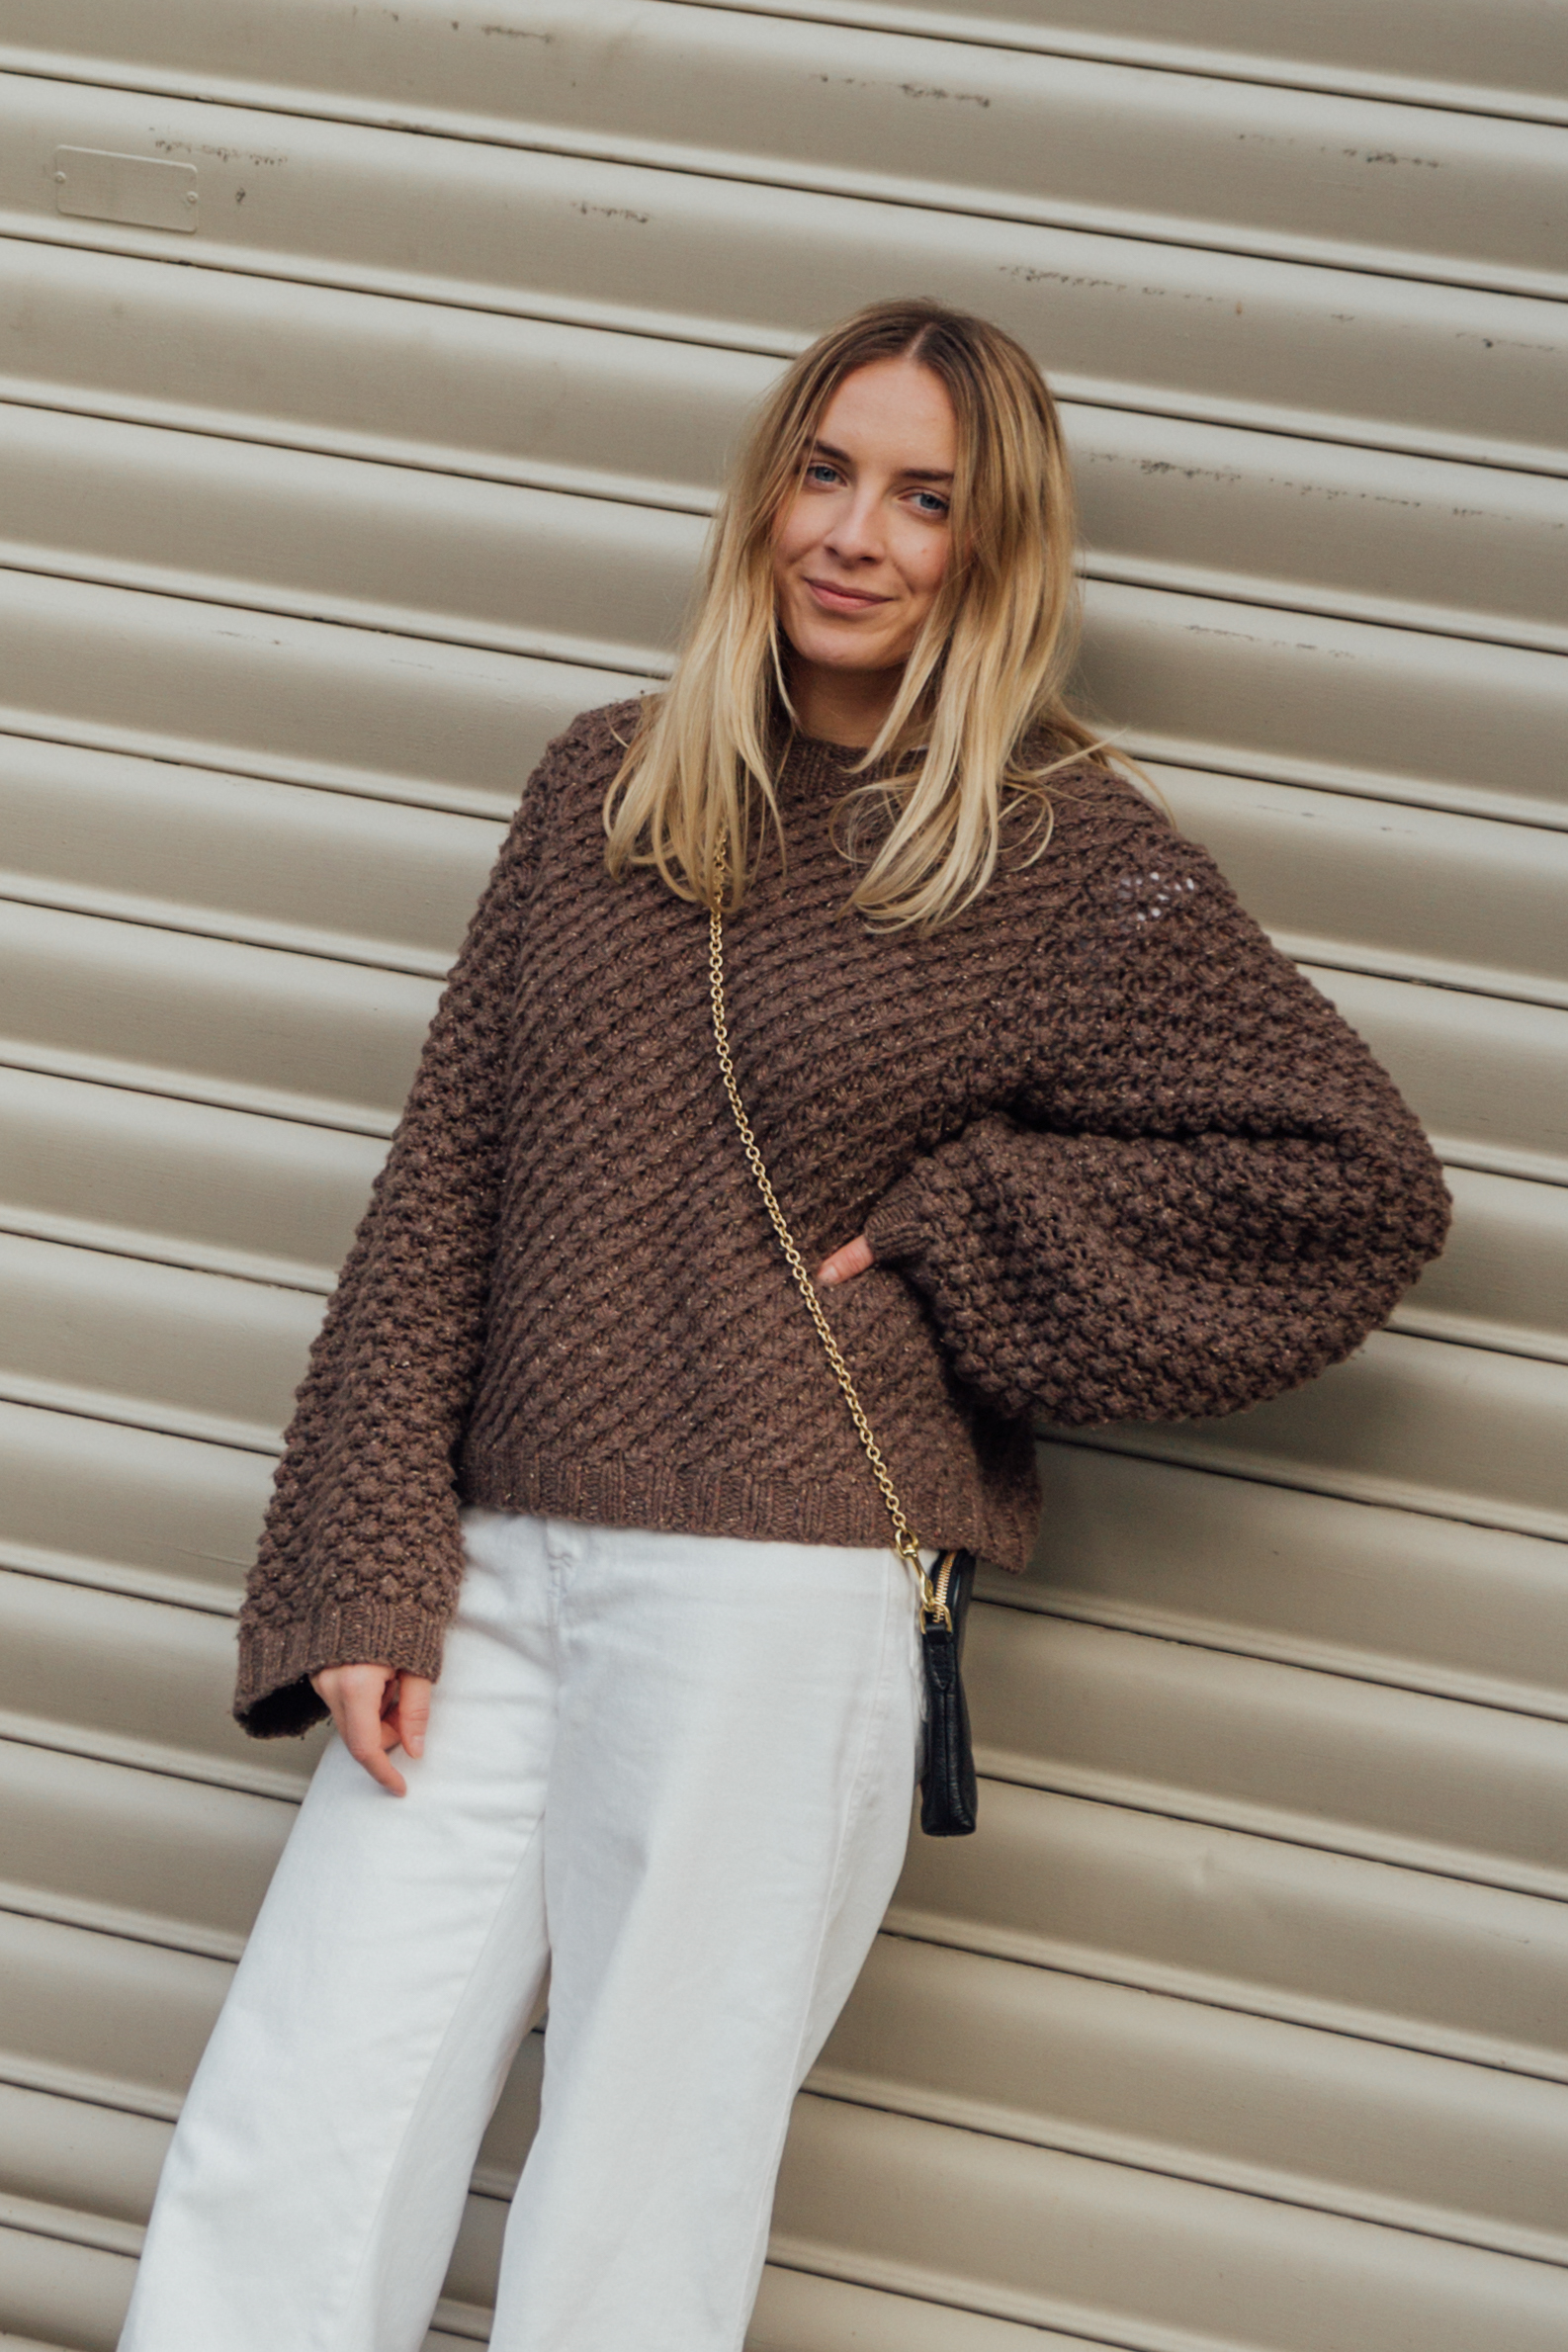 Lonely Hearts Jumper, Mi Piaci Snakeskin Boots, Deadly Ponies Bag | StolenInspiration.com NZ Fashion Blog 4